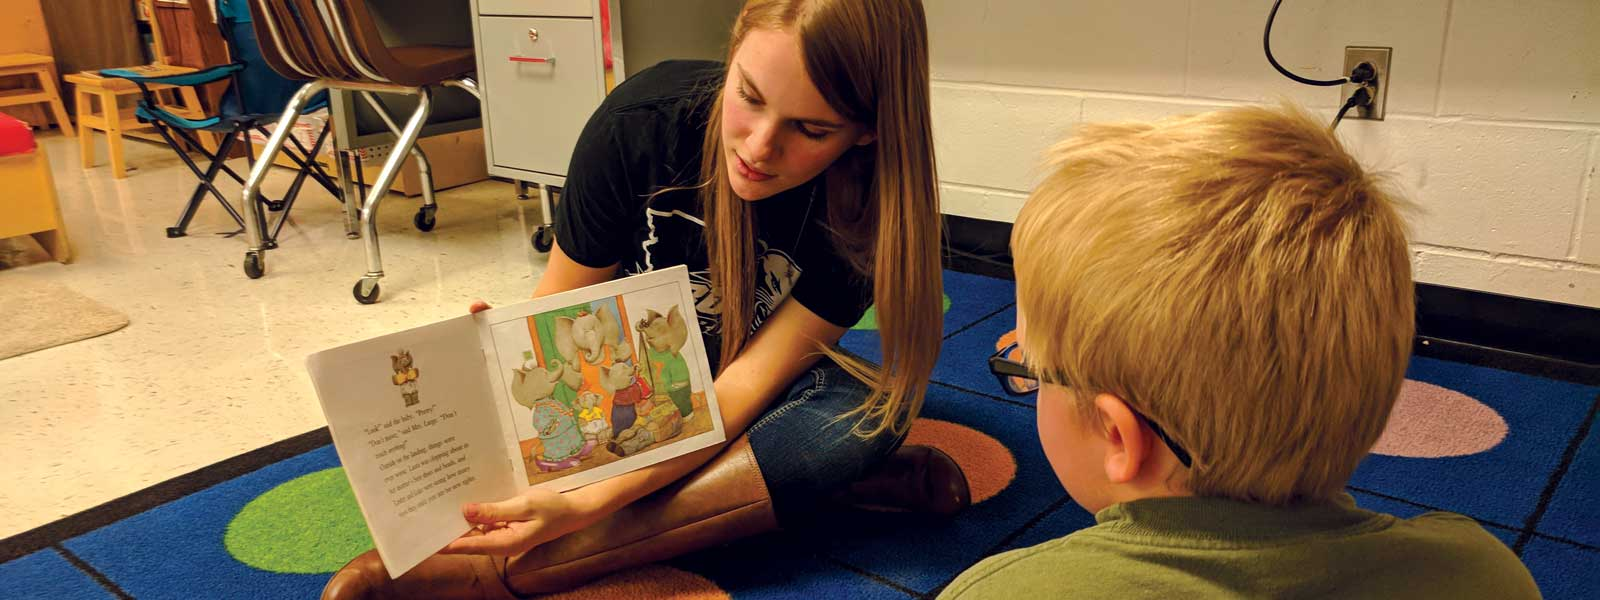 female college student reads book to young boy